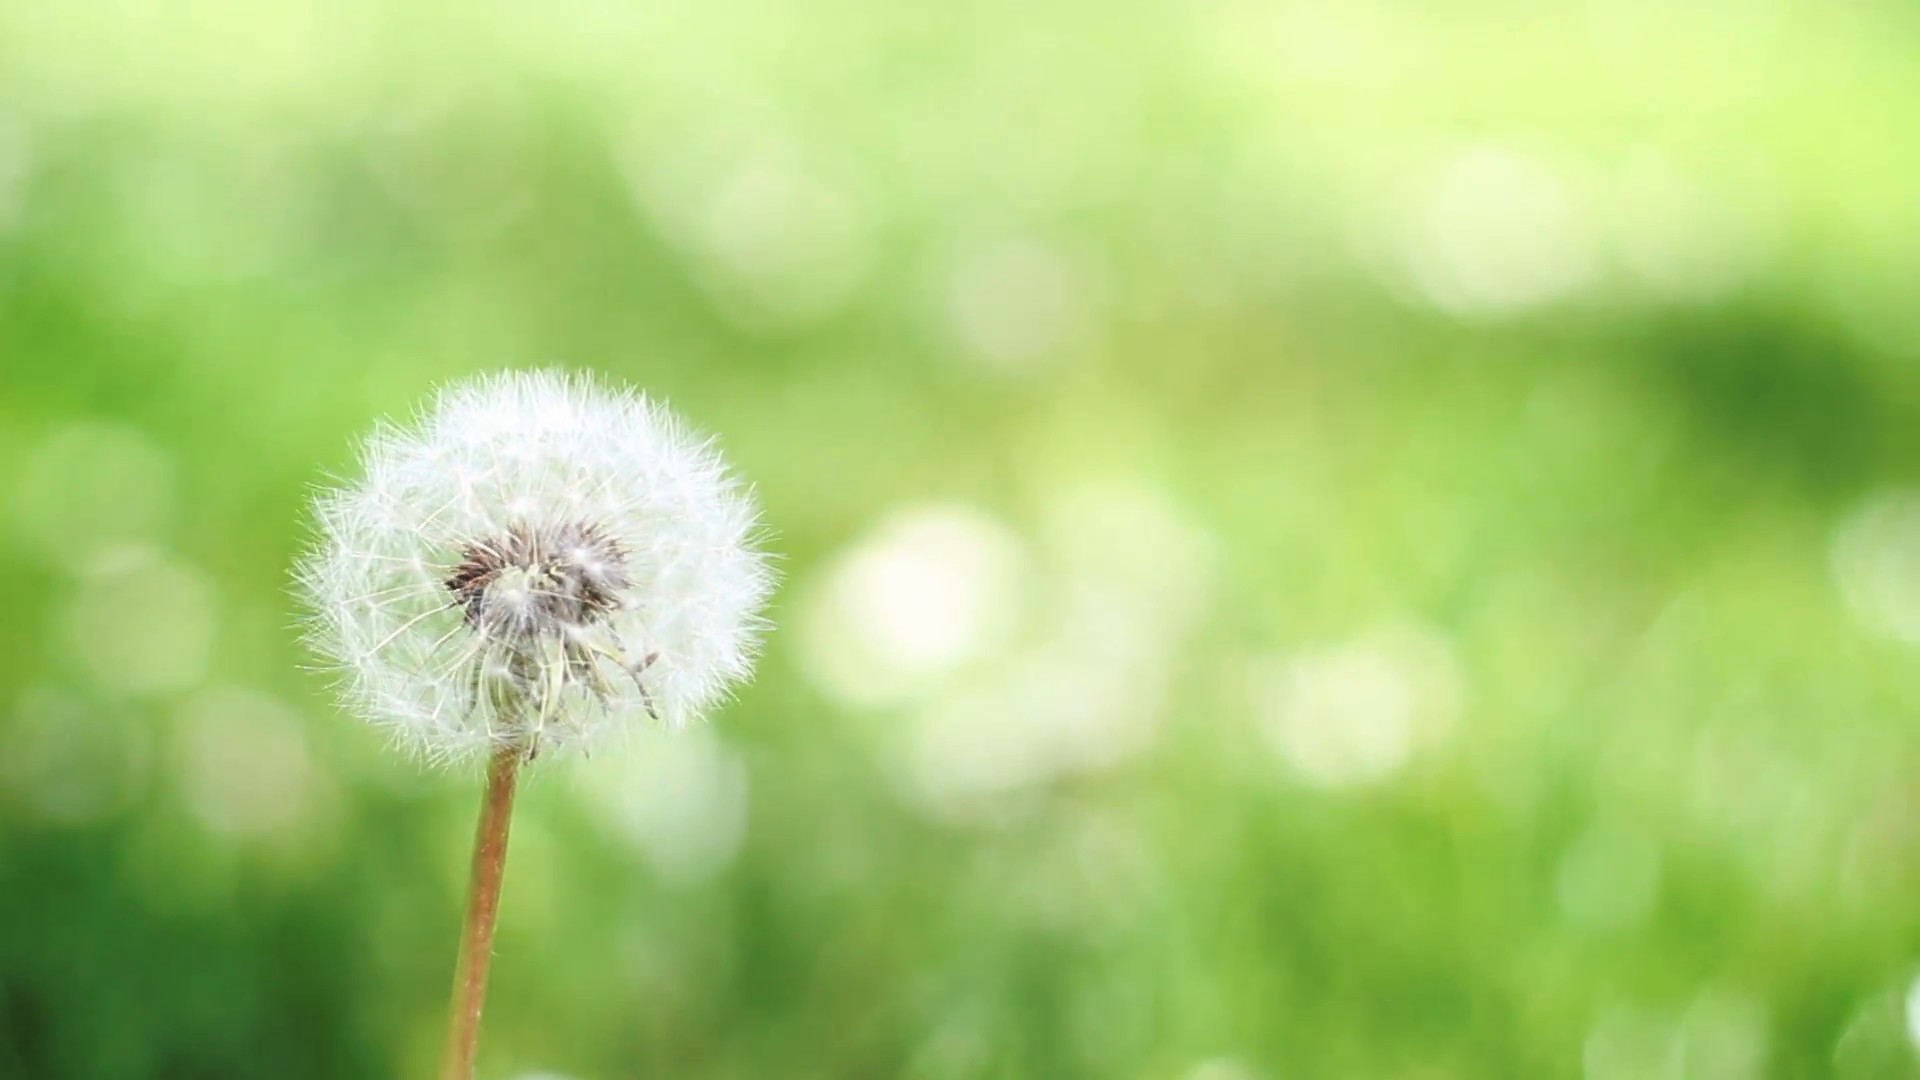 1920x1080 Dandelion floral background video, calming green grass out of focus, single  dandelion swaying in the wind Stock Video Footage - VideoBlocks